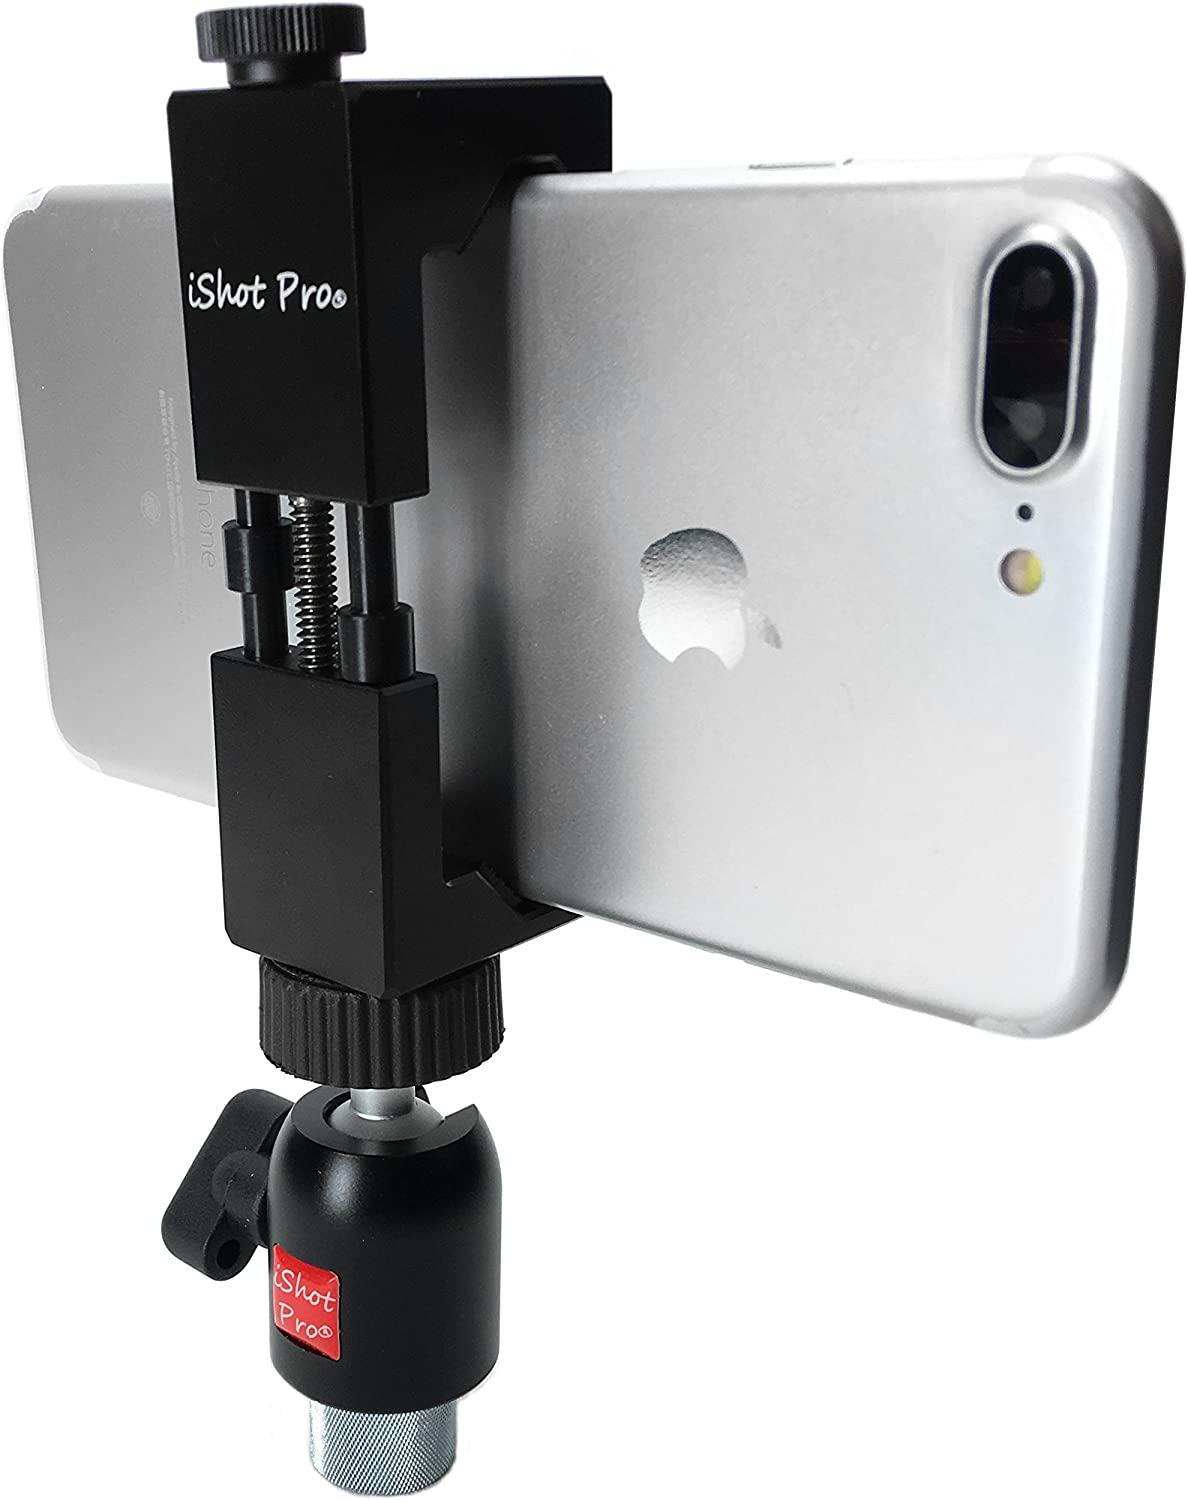 Amazon Com Ishot Pro Securegrip Metal Iphone Universal Smartphone Mic Music Tripod Stand Mount 360 Swivel Ball Head 1 4 To 5 8 Bushing Reducer Converter Compatible With Iphone Smartphone 2 5 To 3 6